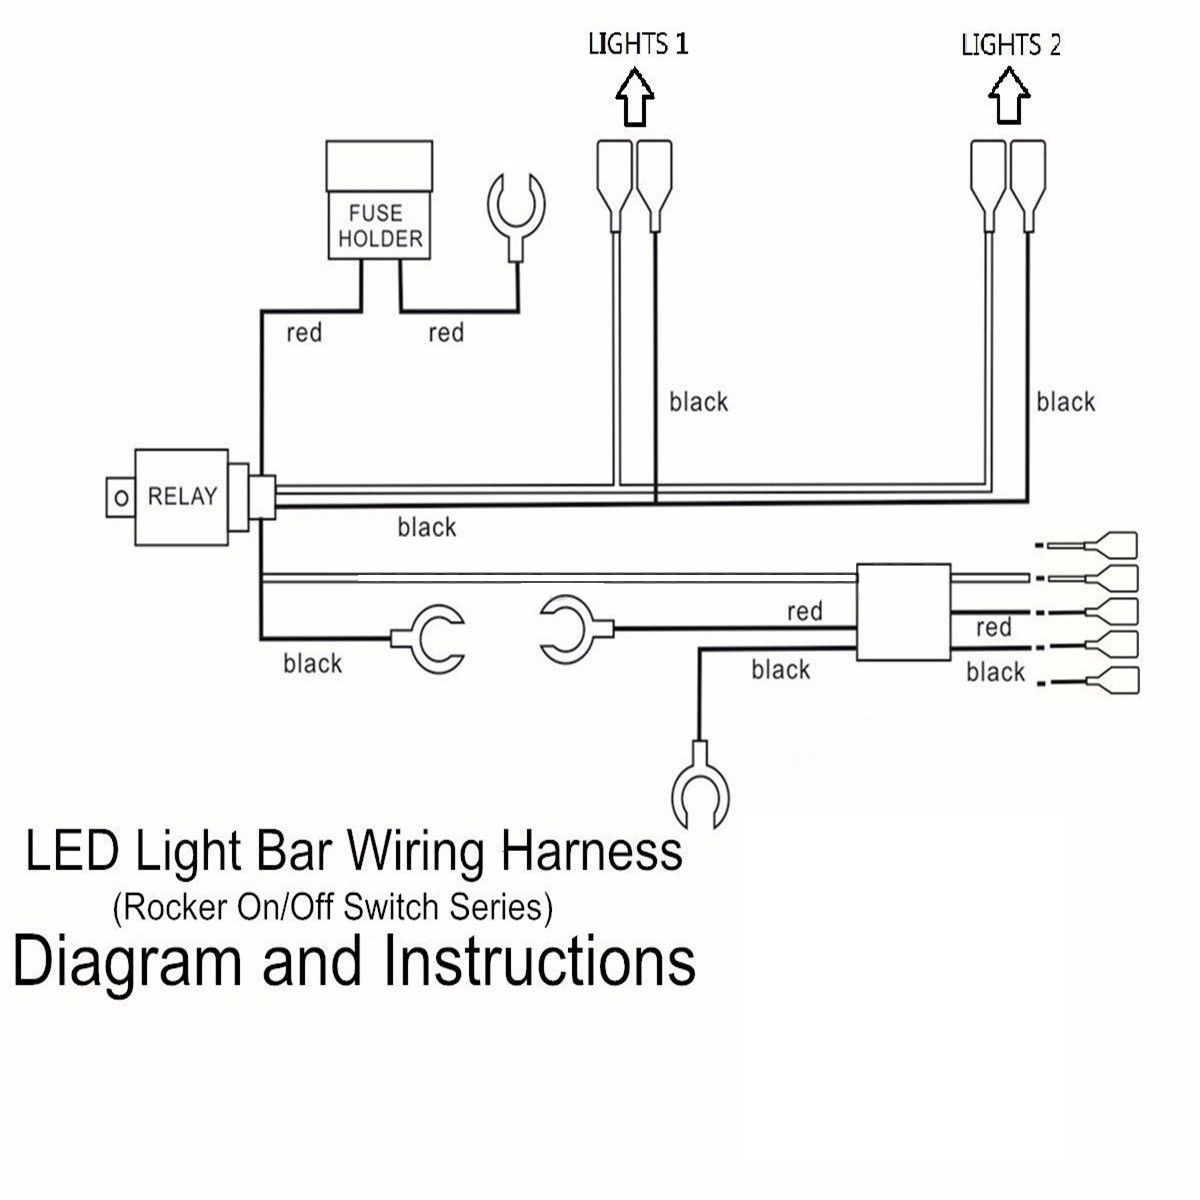 wiring diagram relay off road lights xlr mono jack 5 pins led light bar driving switch rocker loom harness 12v | ebay